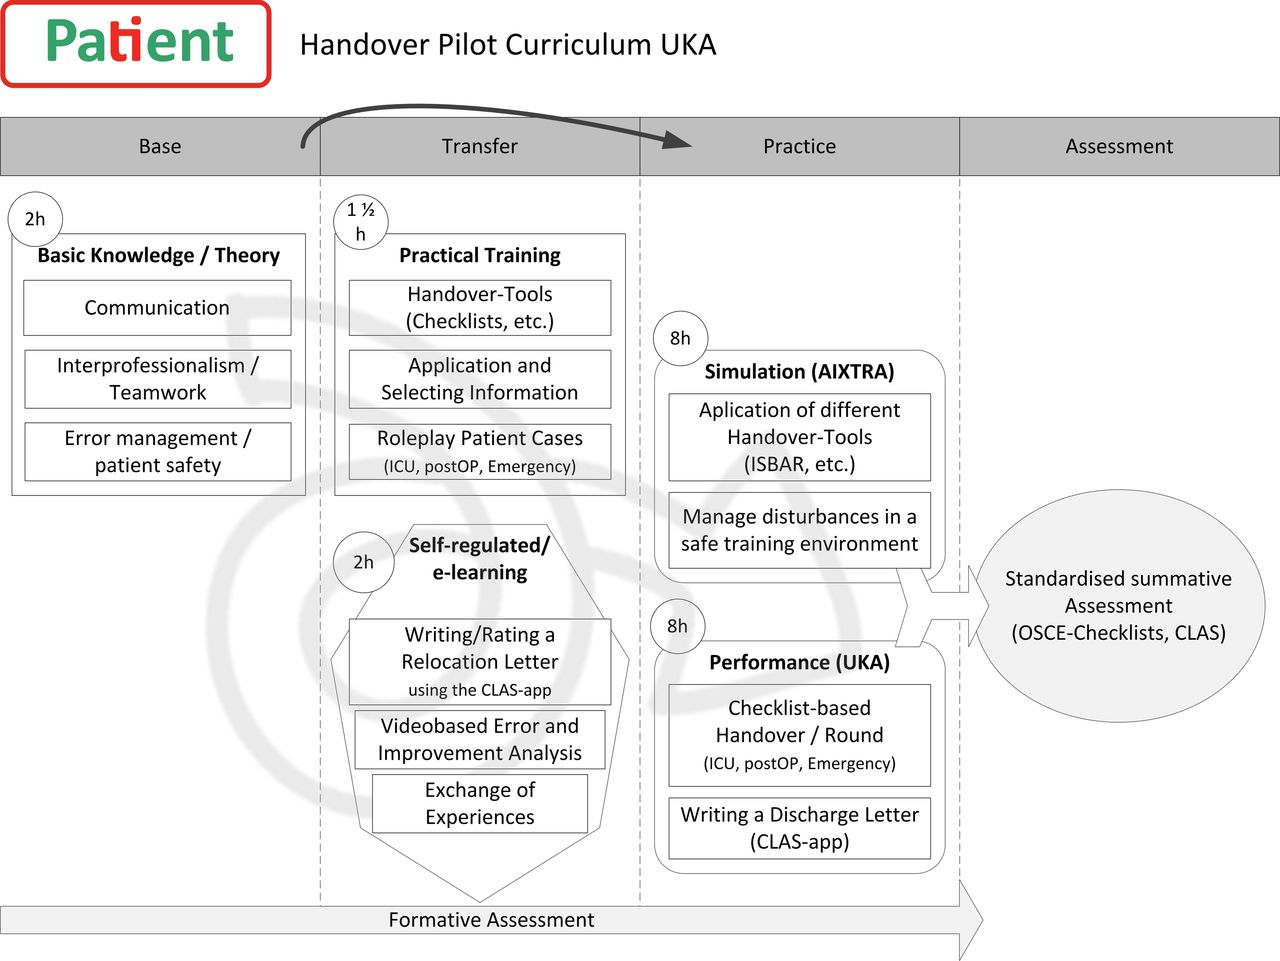 Handover training for medical students: a controlled educational